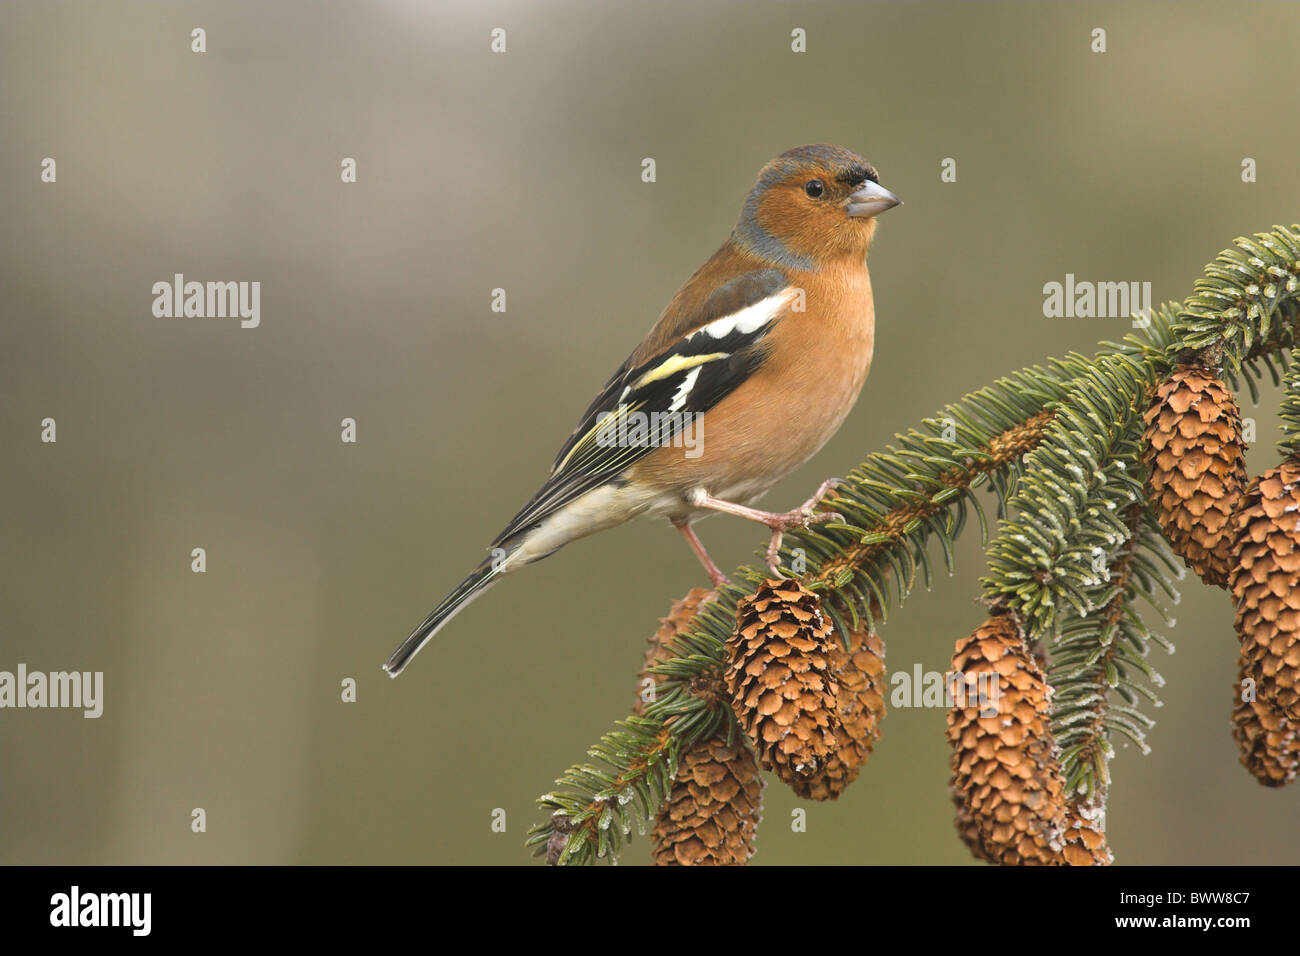 Chaffinch (Fringilla coelebs) adult male, perched on Sitka Spruce (Picea sitchensis) twig with cones, Borders, Scotland, - Stock Image